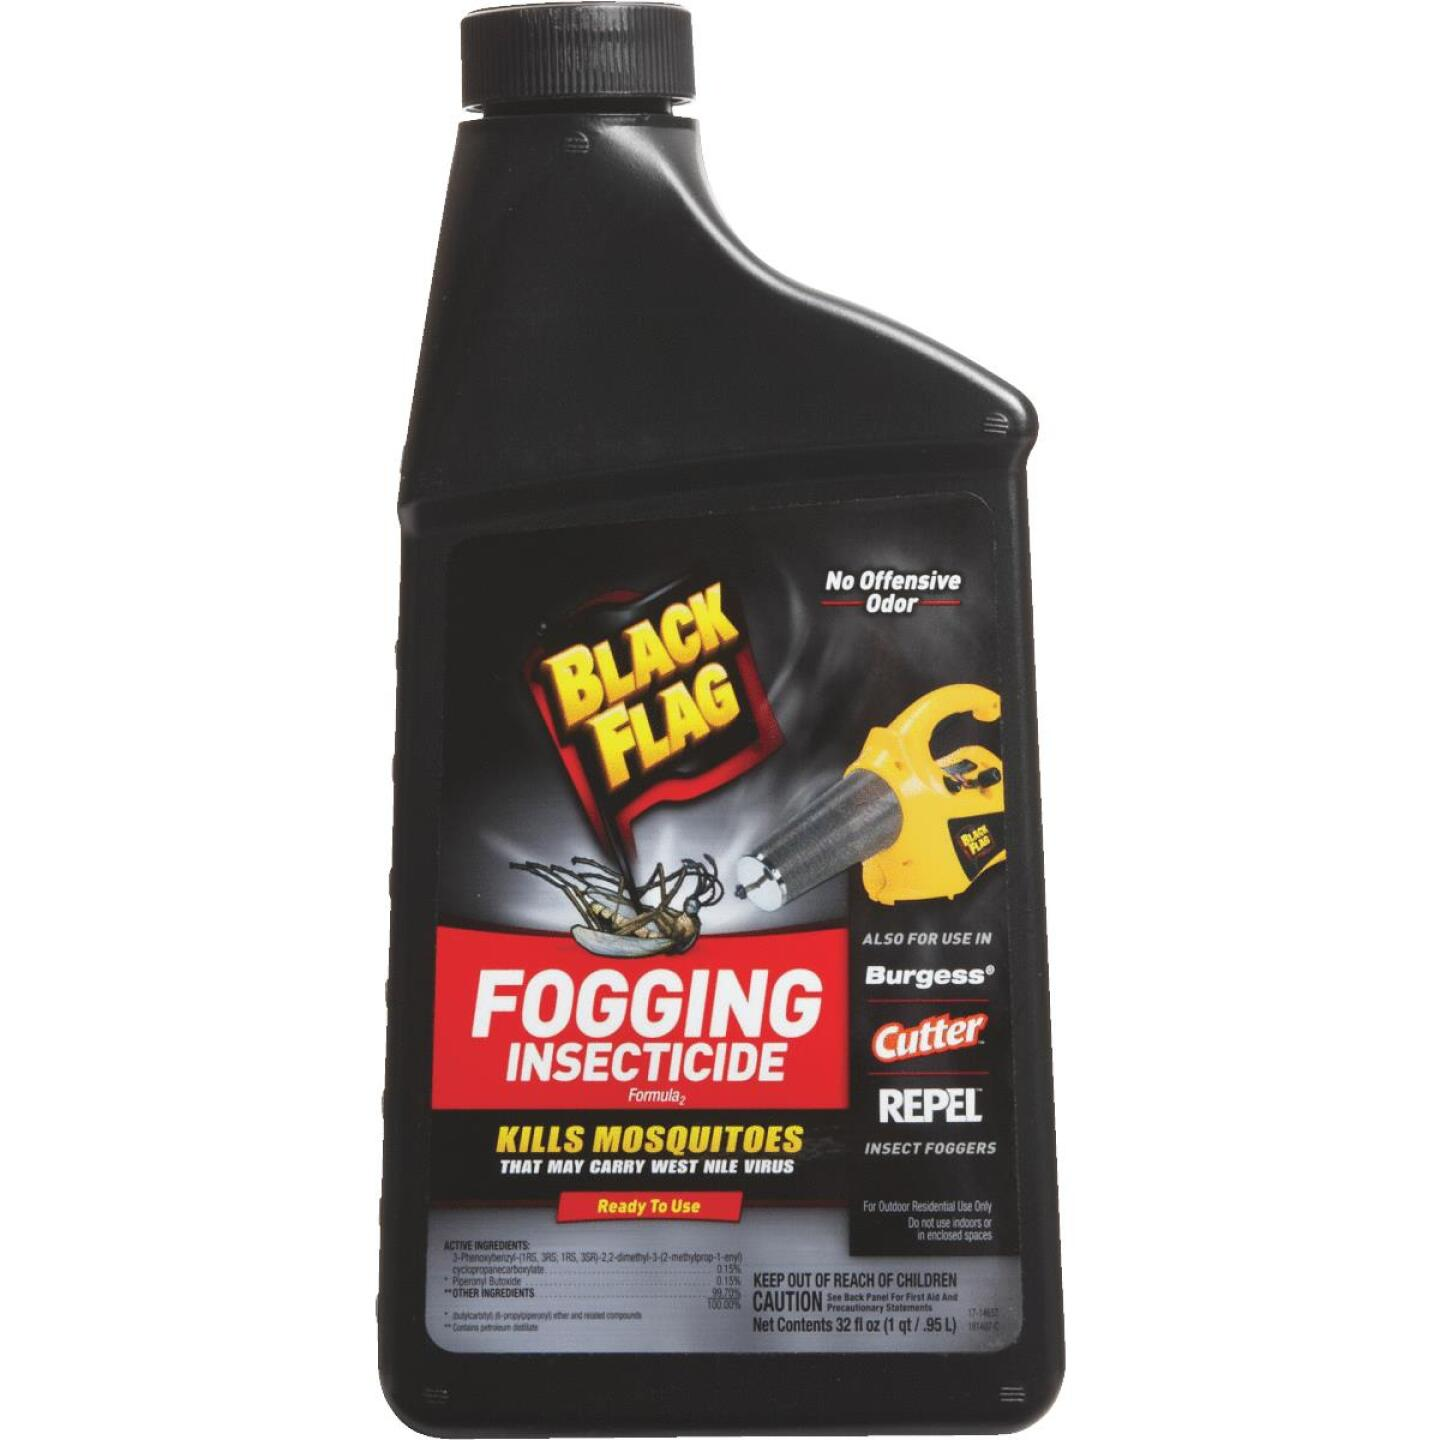 Black Flag 32 Oz. 1/2-Acre Coverage Outdoor Fogger Insecticide Image 2